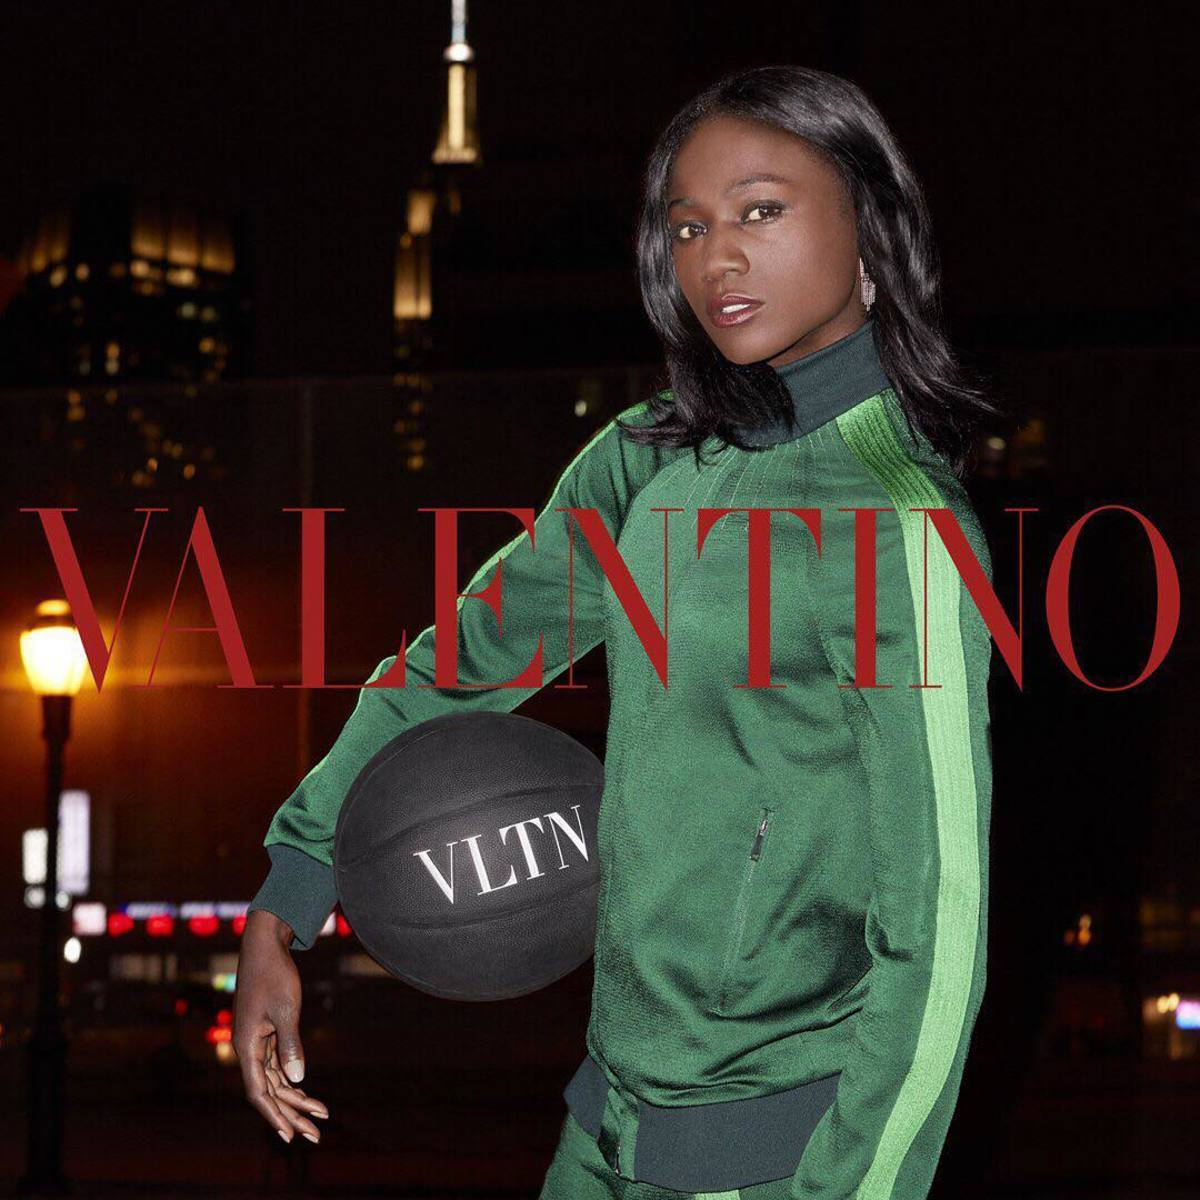 Valentino's Resort 2018 campaign shot by Terry Richardson. Ph. @maisonvalentino Instagram